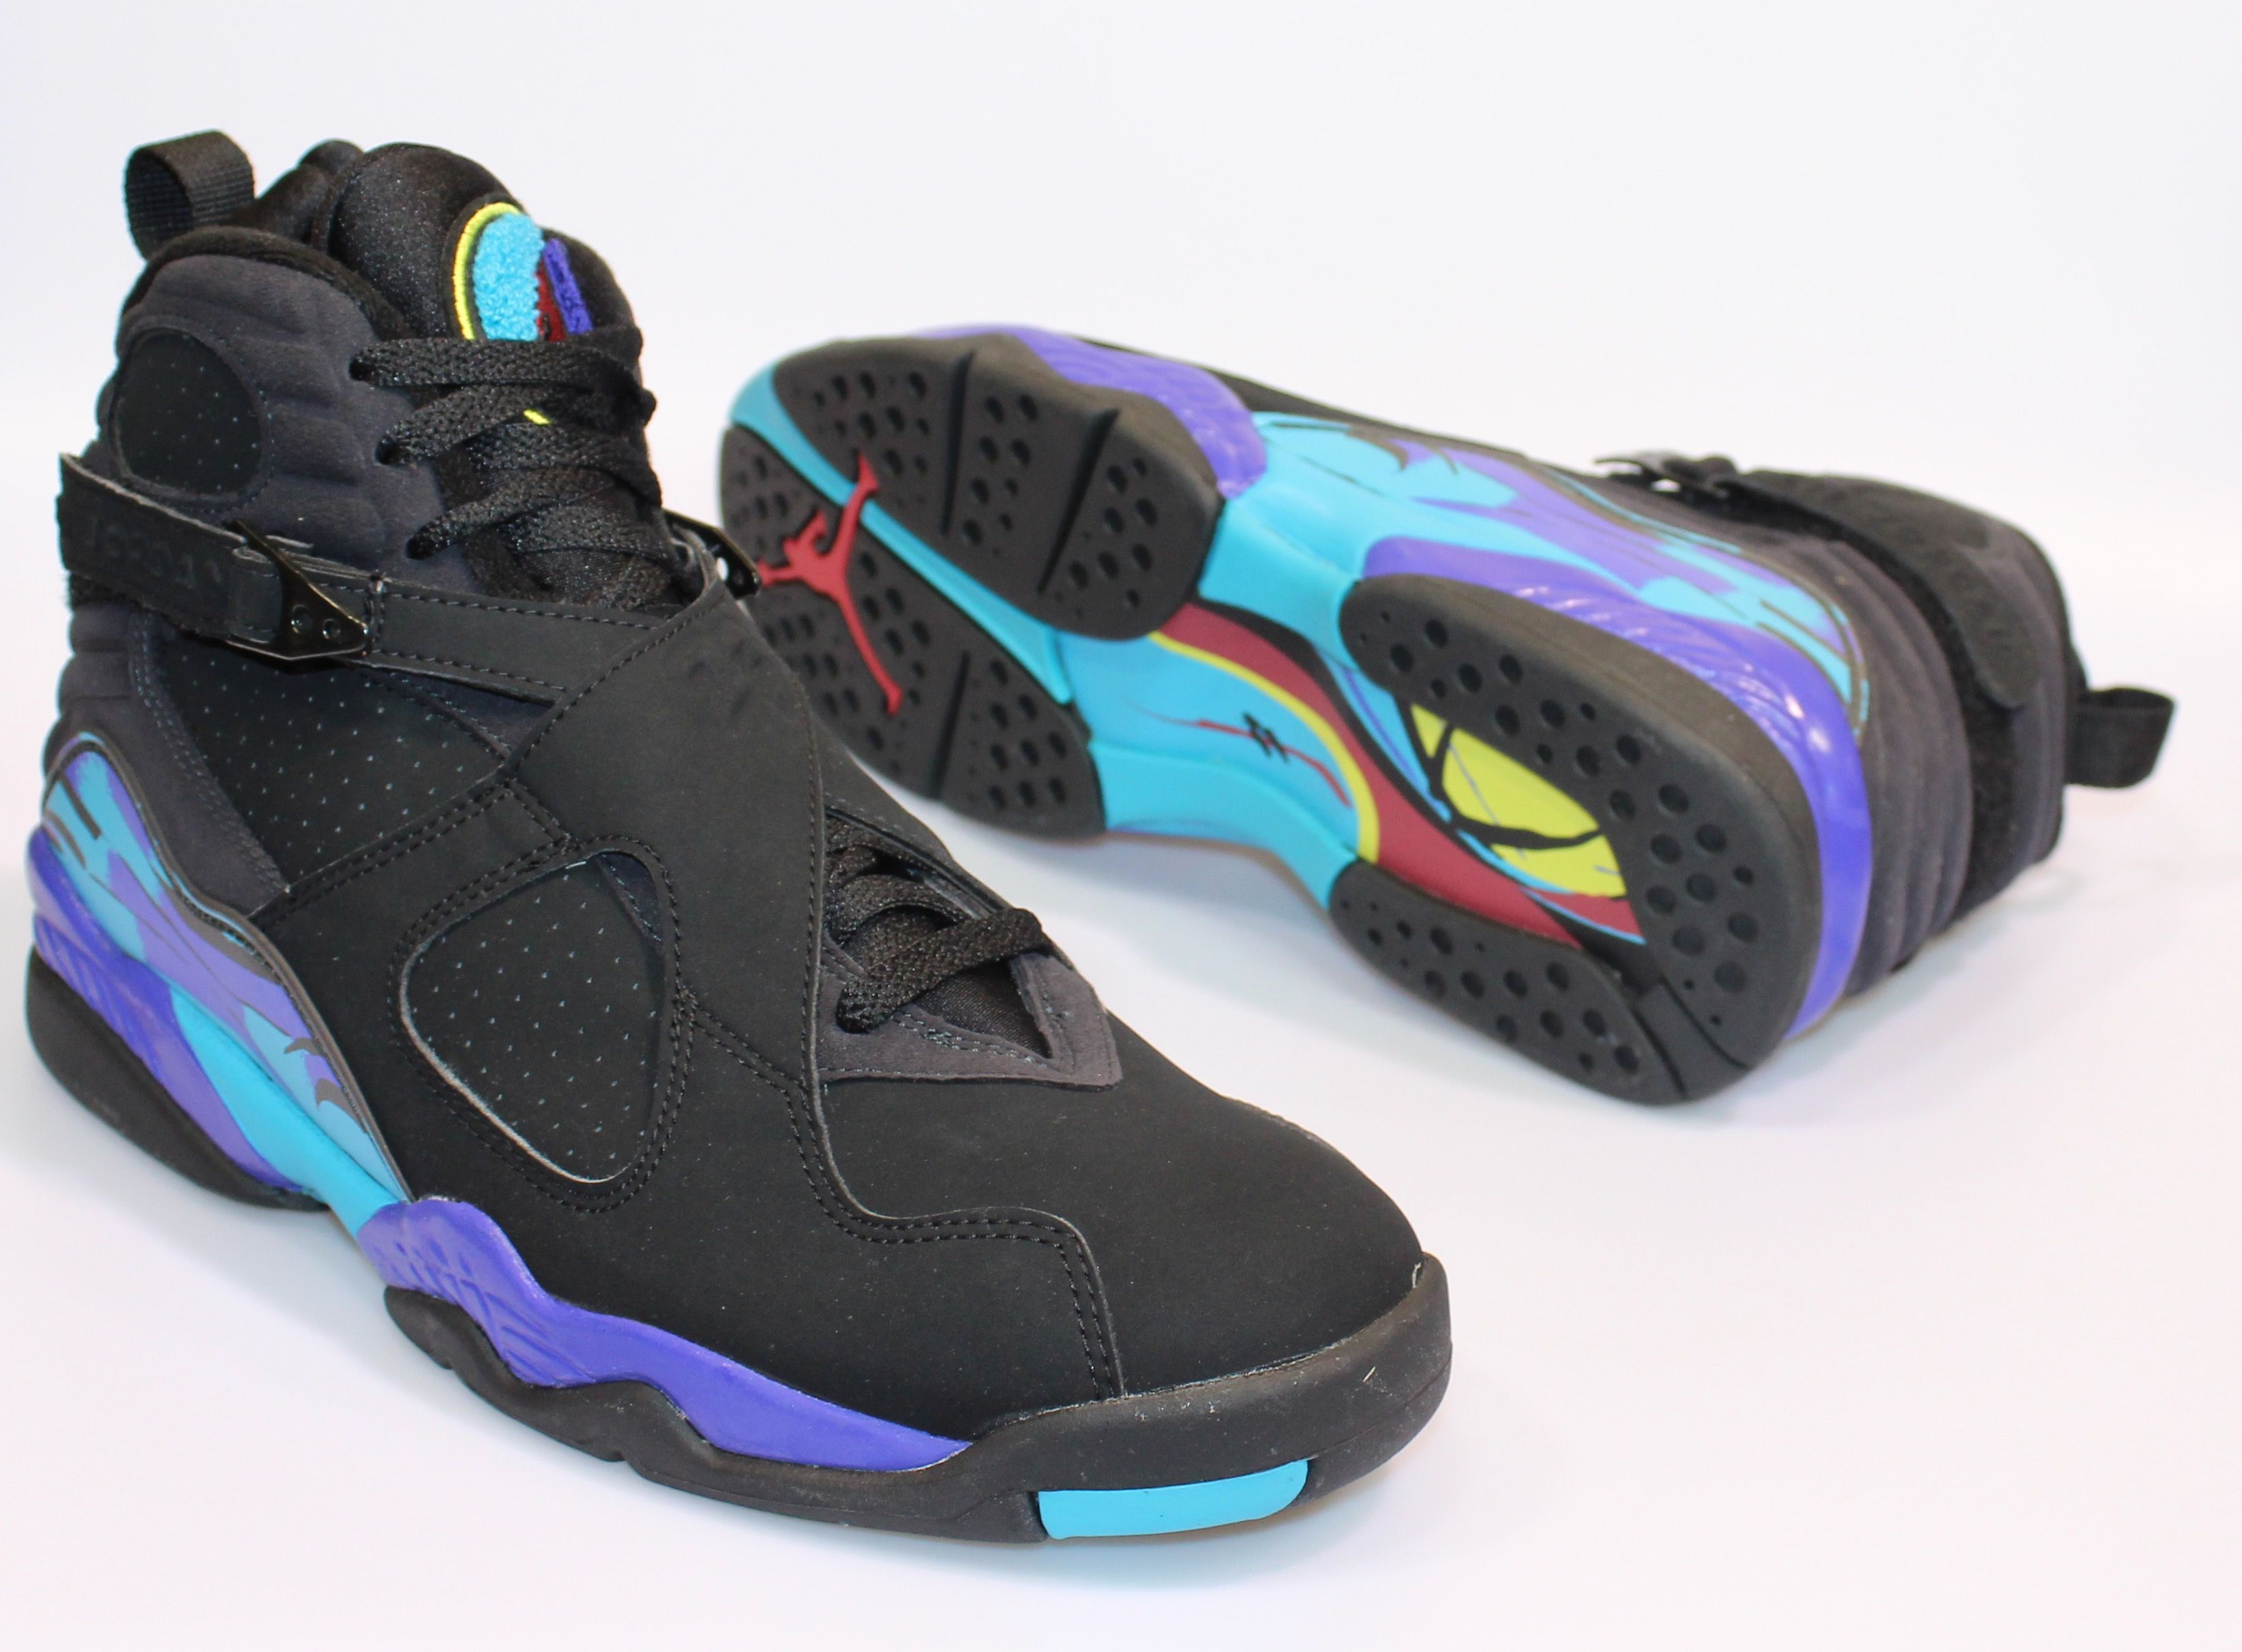 Air Jordan Retro 8 Aqua. They were released in 2007, and sold very well